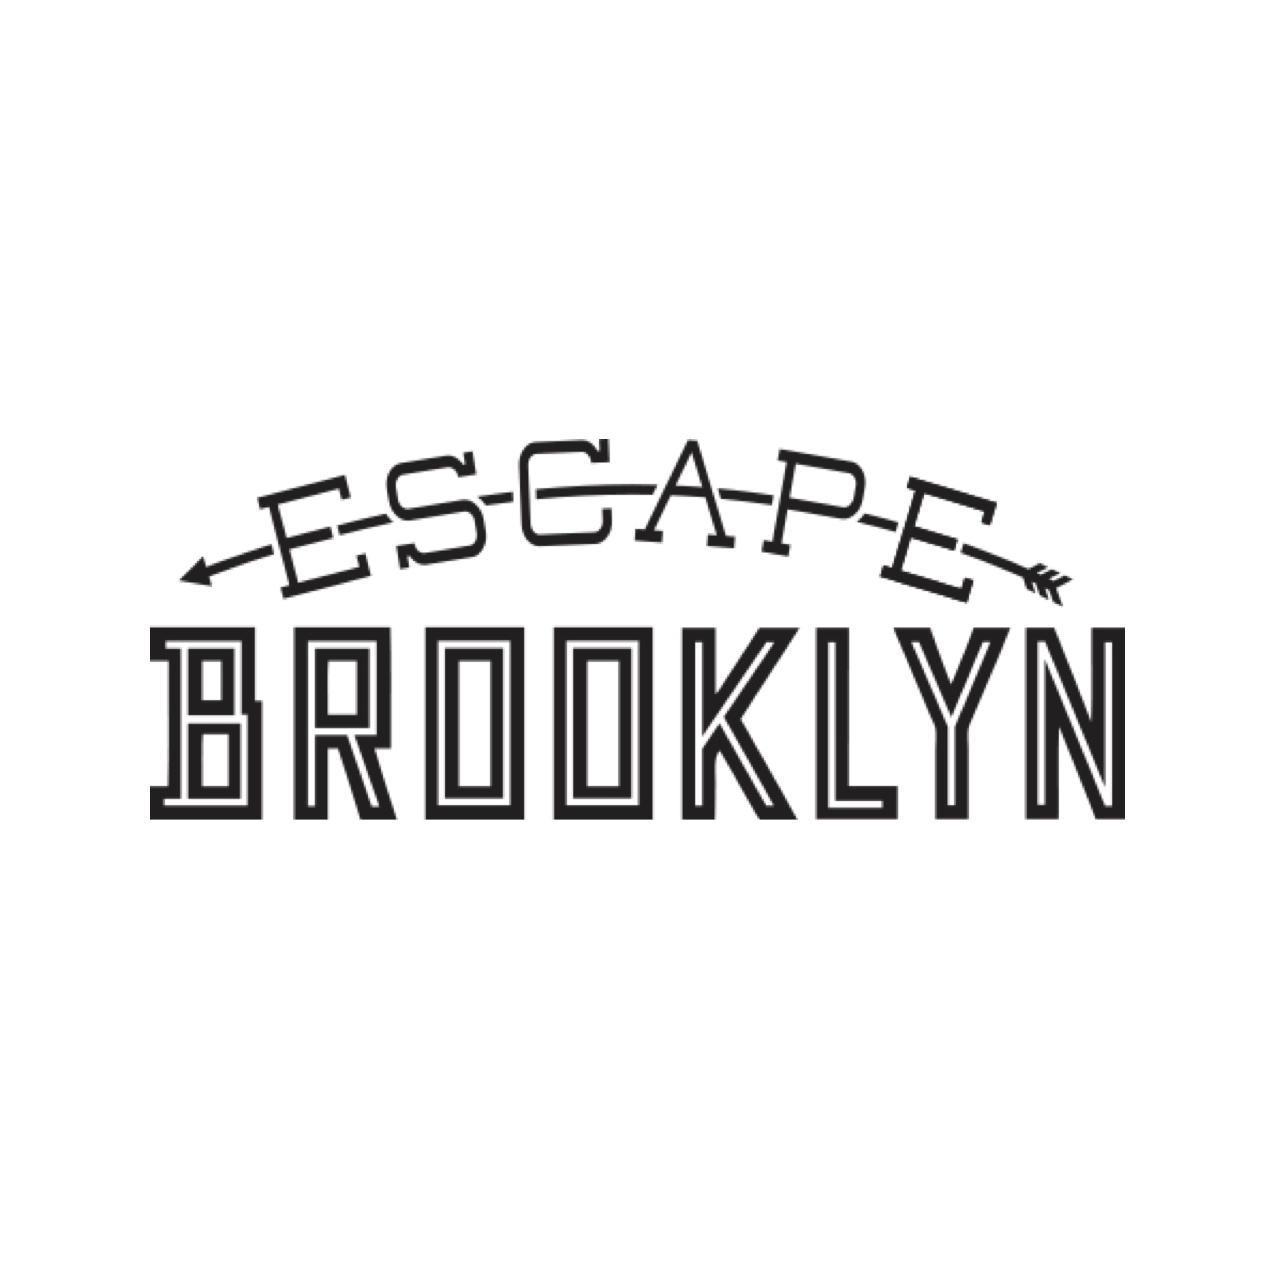 Escape Brooklyn   Daytrips, Weekends & Worthy Destinations from NYC.